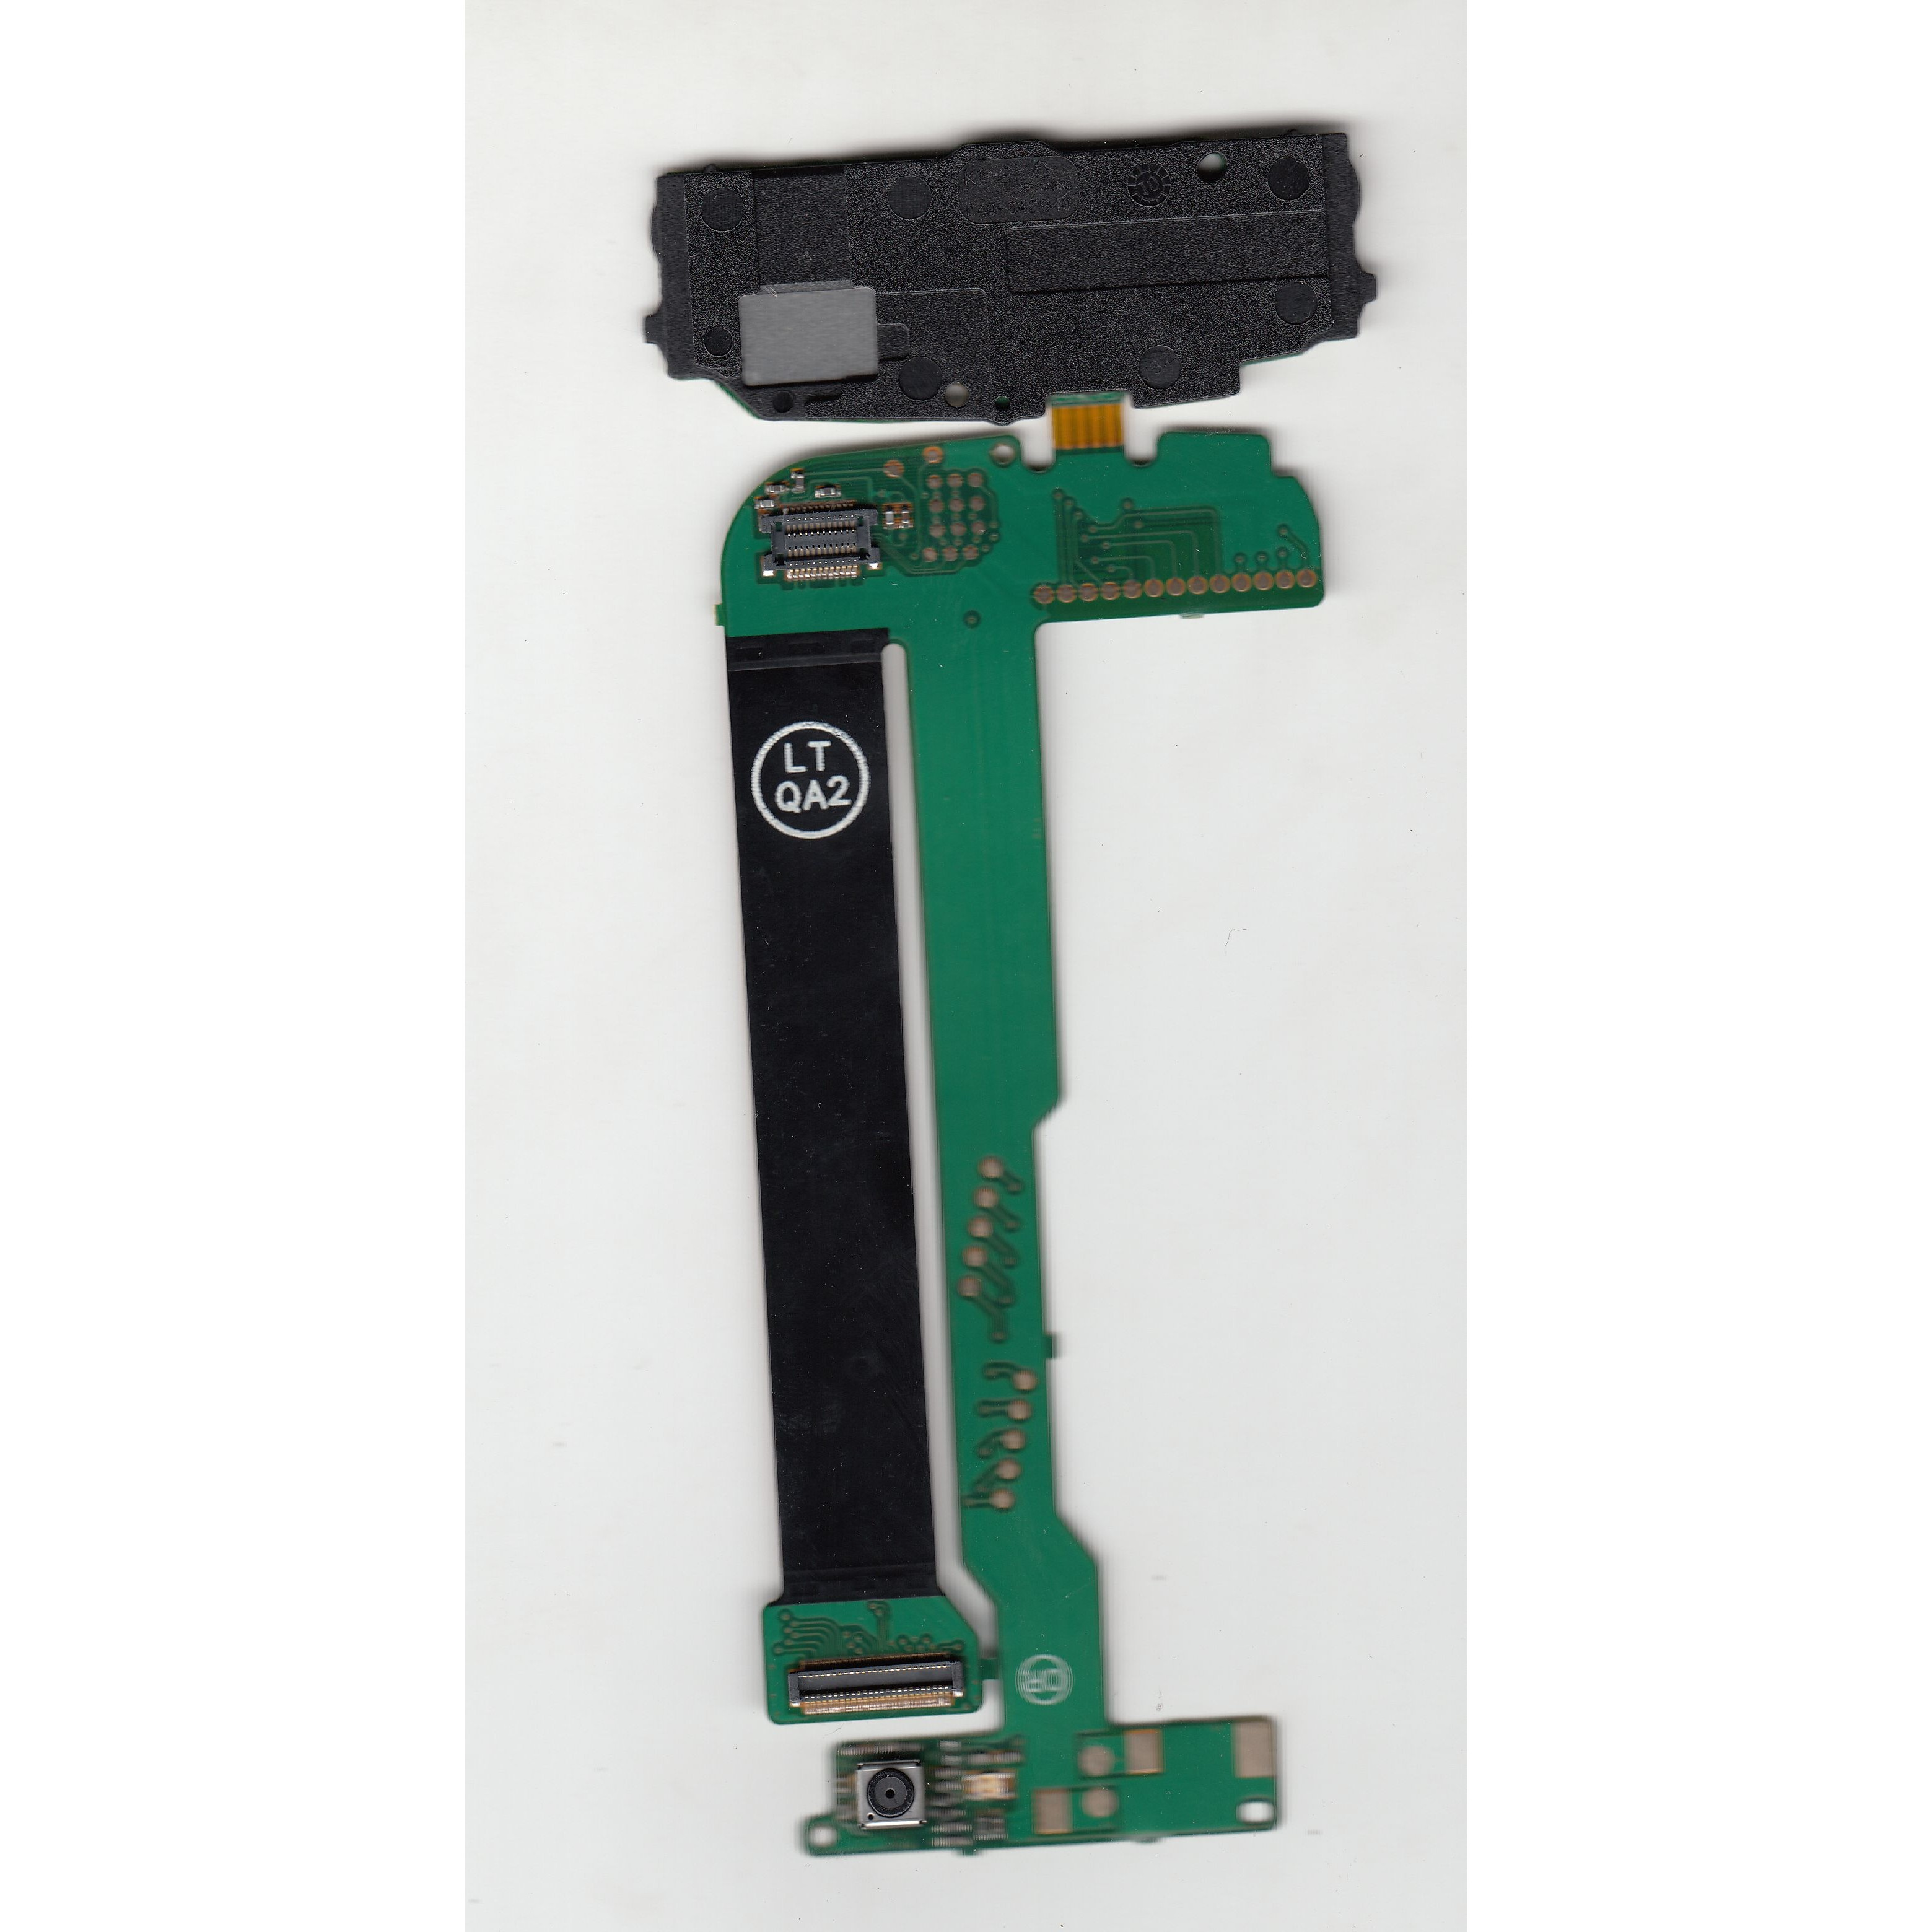 Mobile Phone Flex Cable : Flat flex cable for nokia n gb cell phone maxbhi